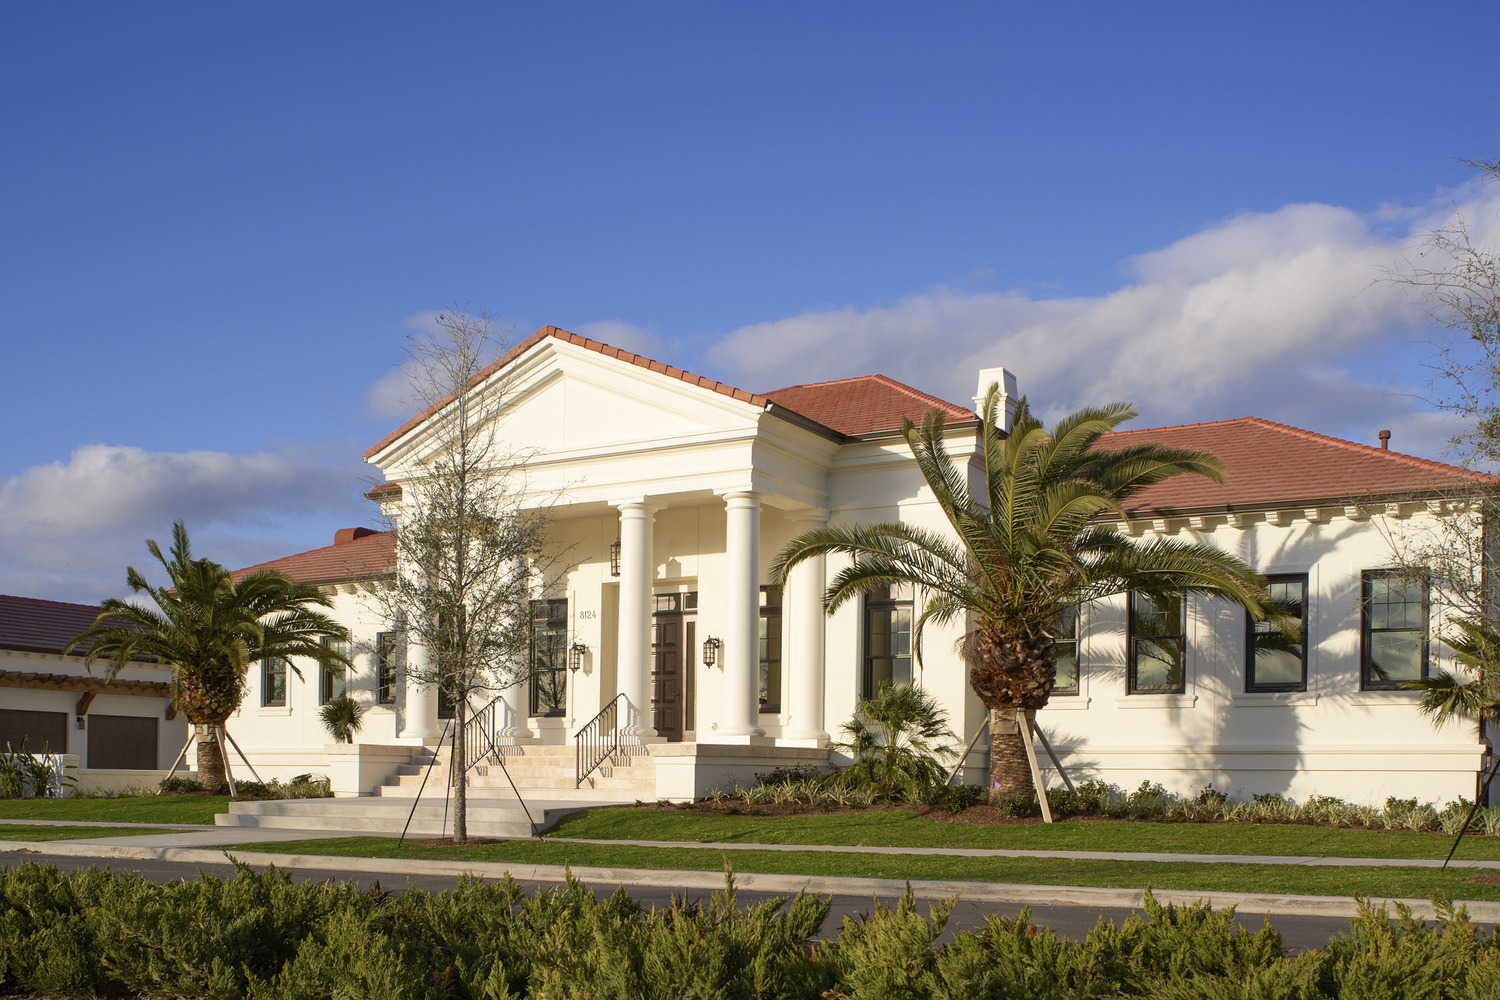 CBG builds MacDill Family Housing, a 527 Homes for Military Families in the Air Force at Harbor Bay at MacDill in Tampa, FL - Image #3